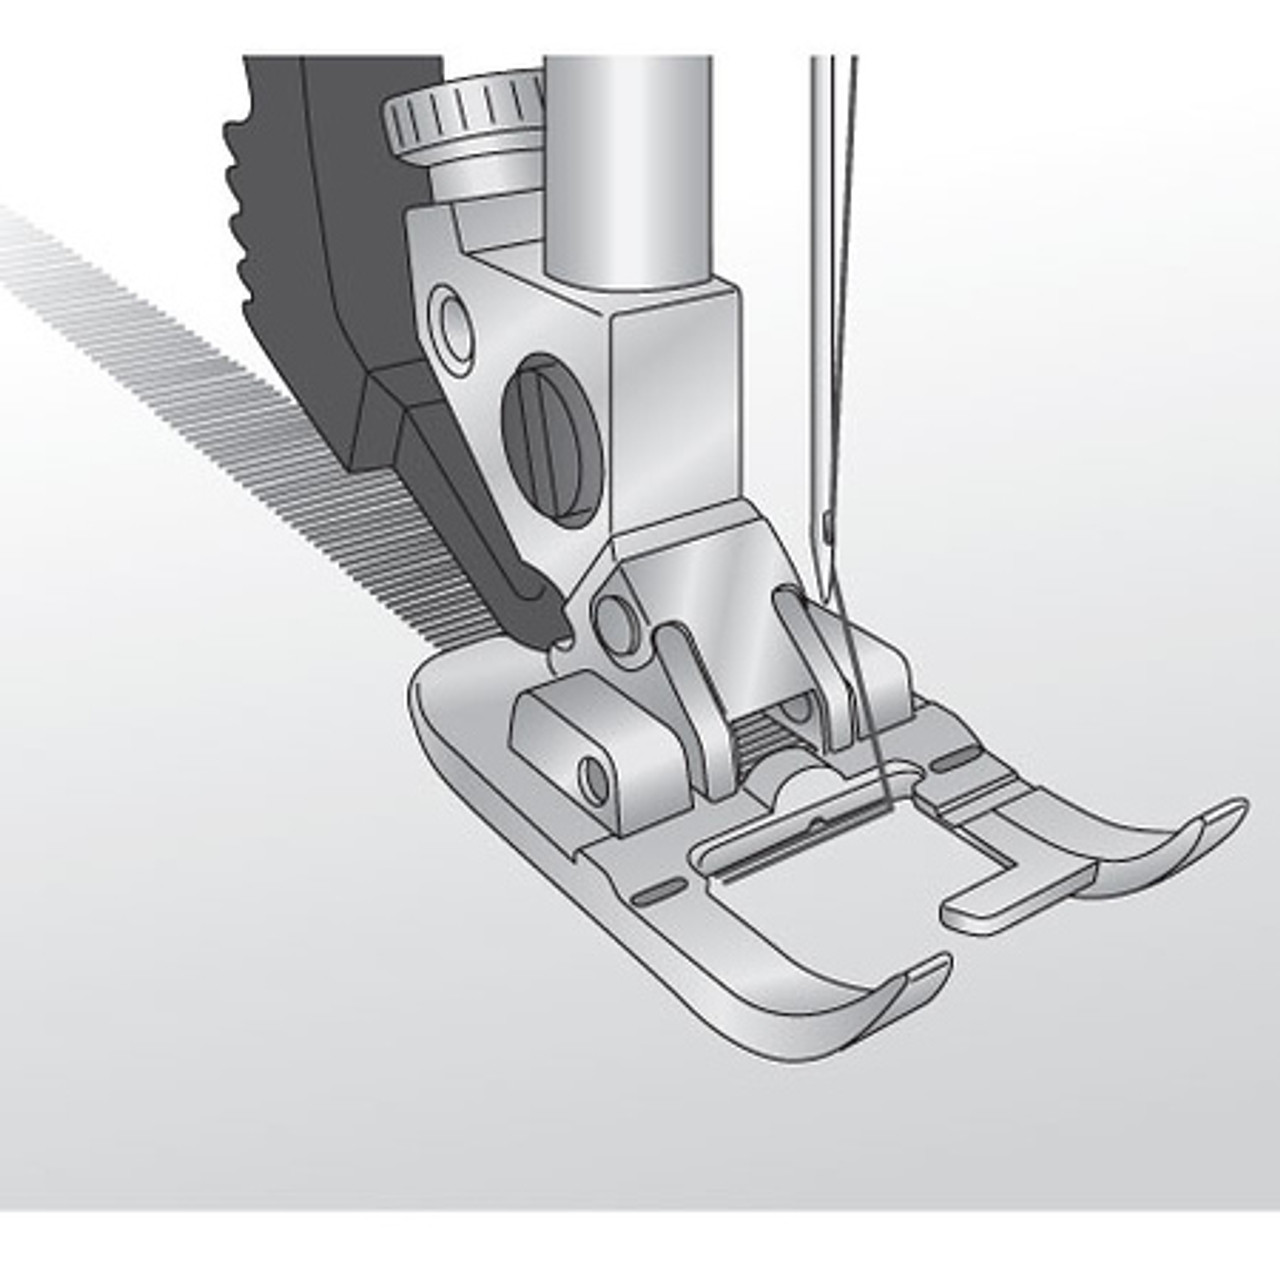 Sewing Star Foot For IDT System